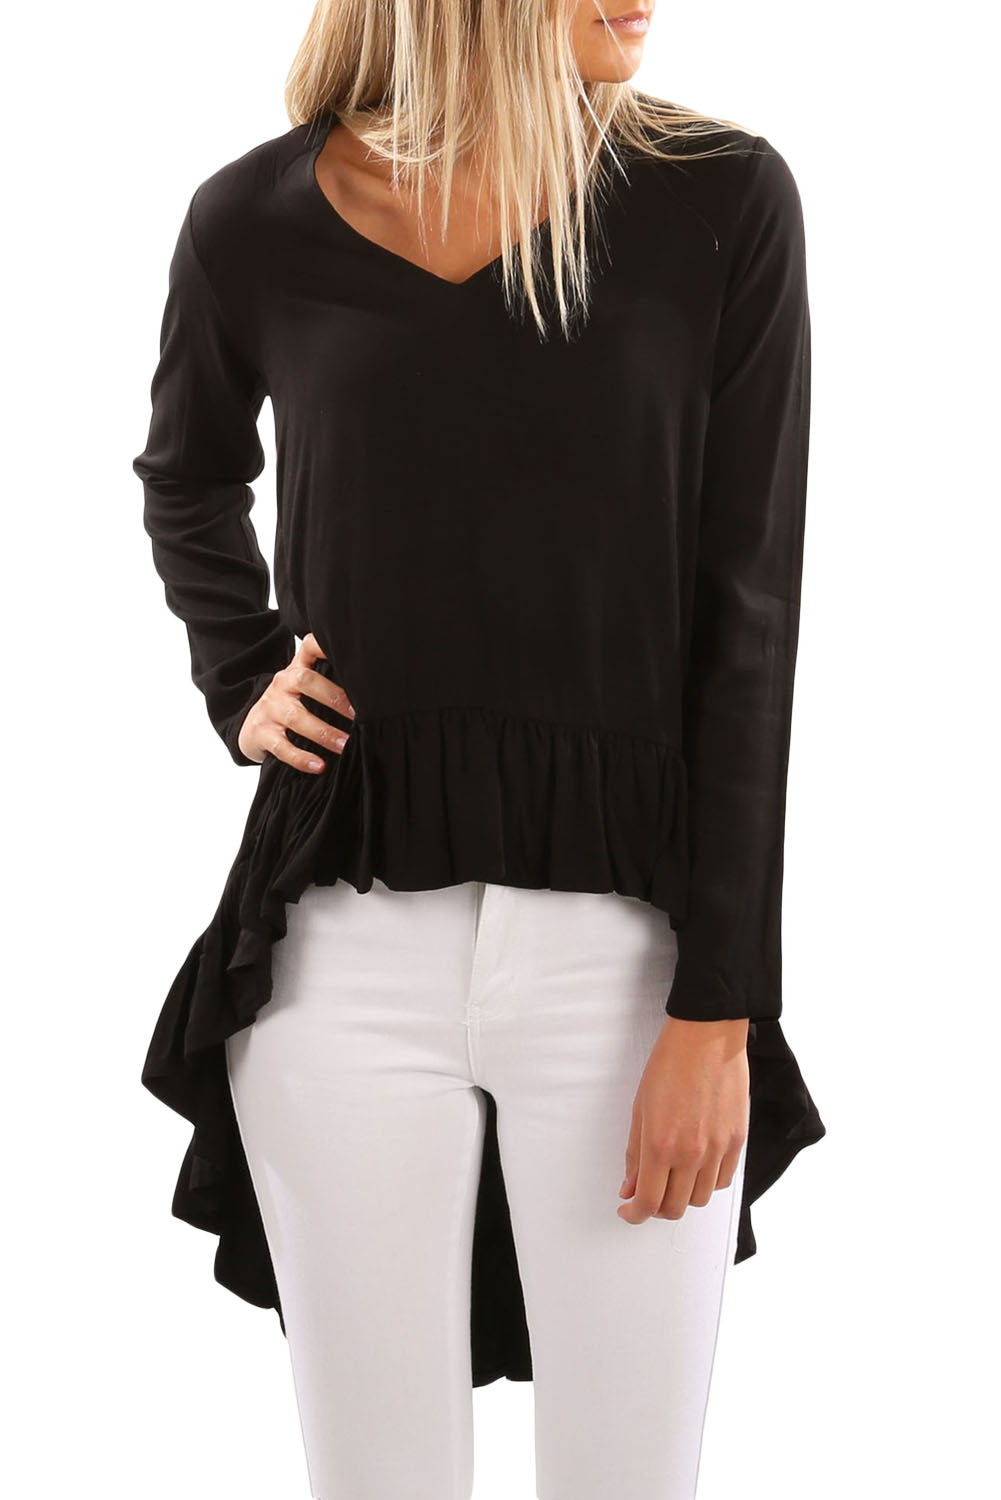 Chicloth Black V Neck Longer Frilled Hemline Back Top-Women's Clothes||Blouses & Tops-Chicloth